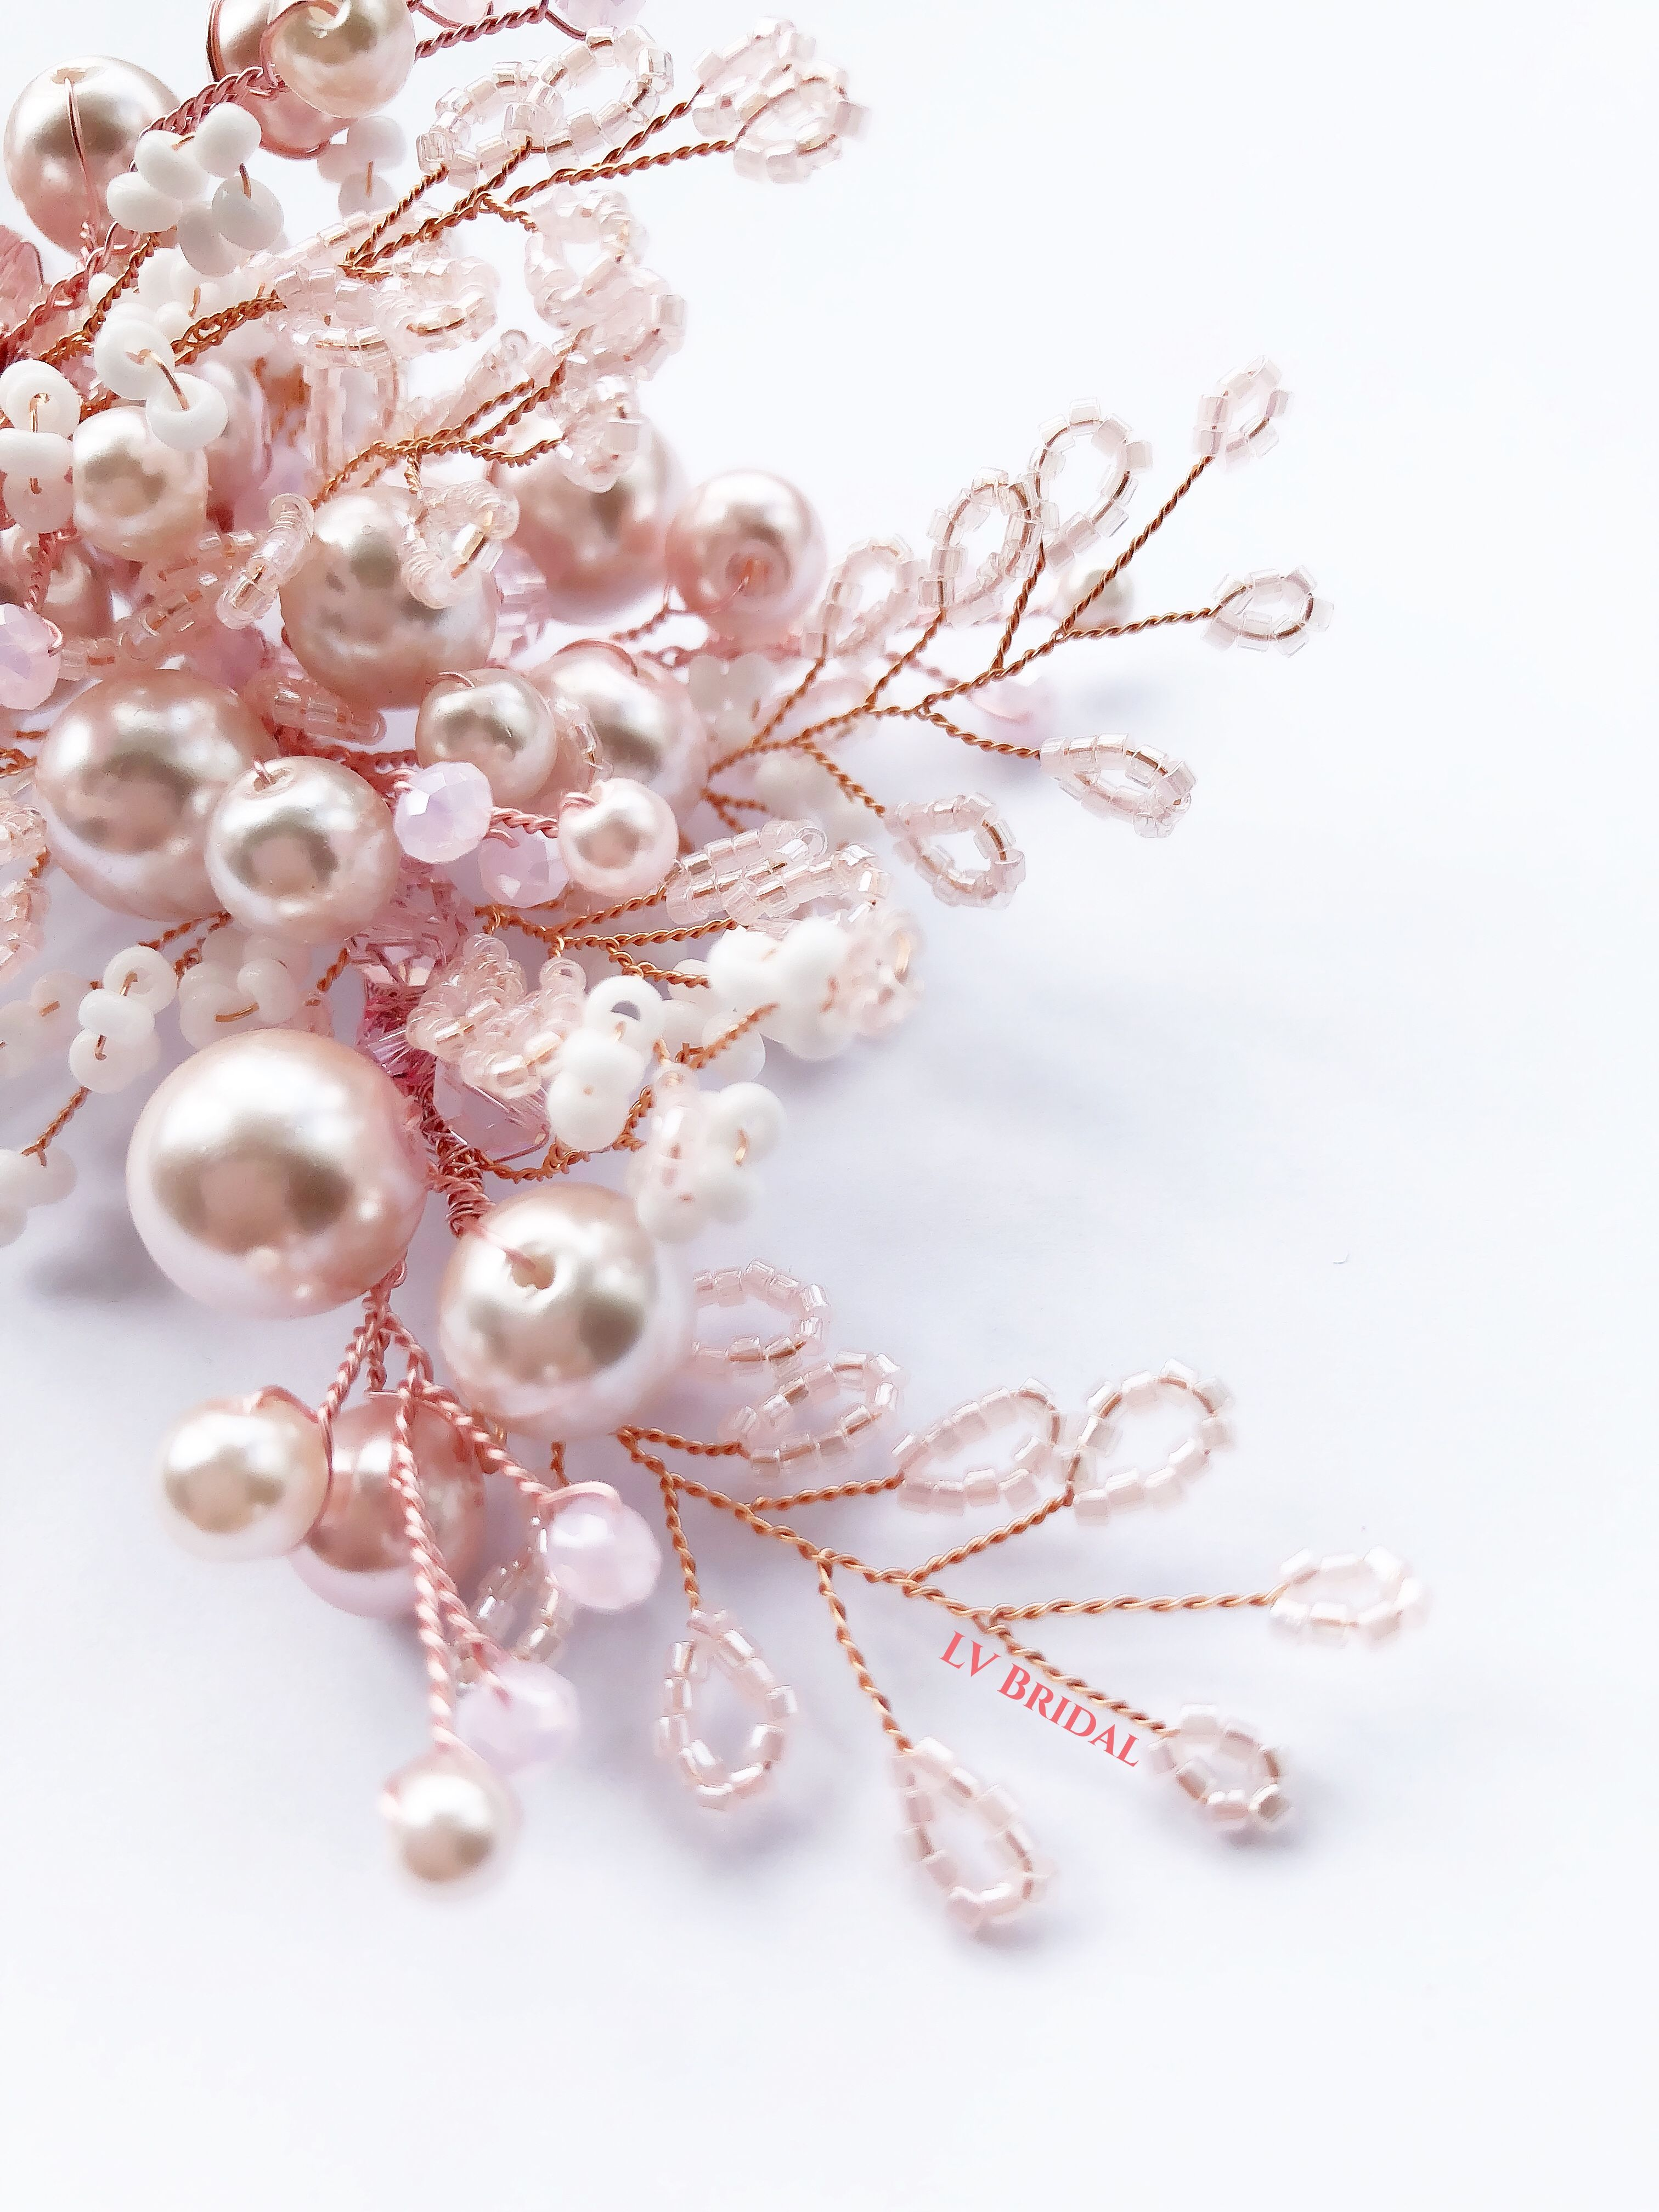 Antoinetteu bridal headpiece rose gold hairvine wedding hair comb